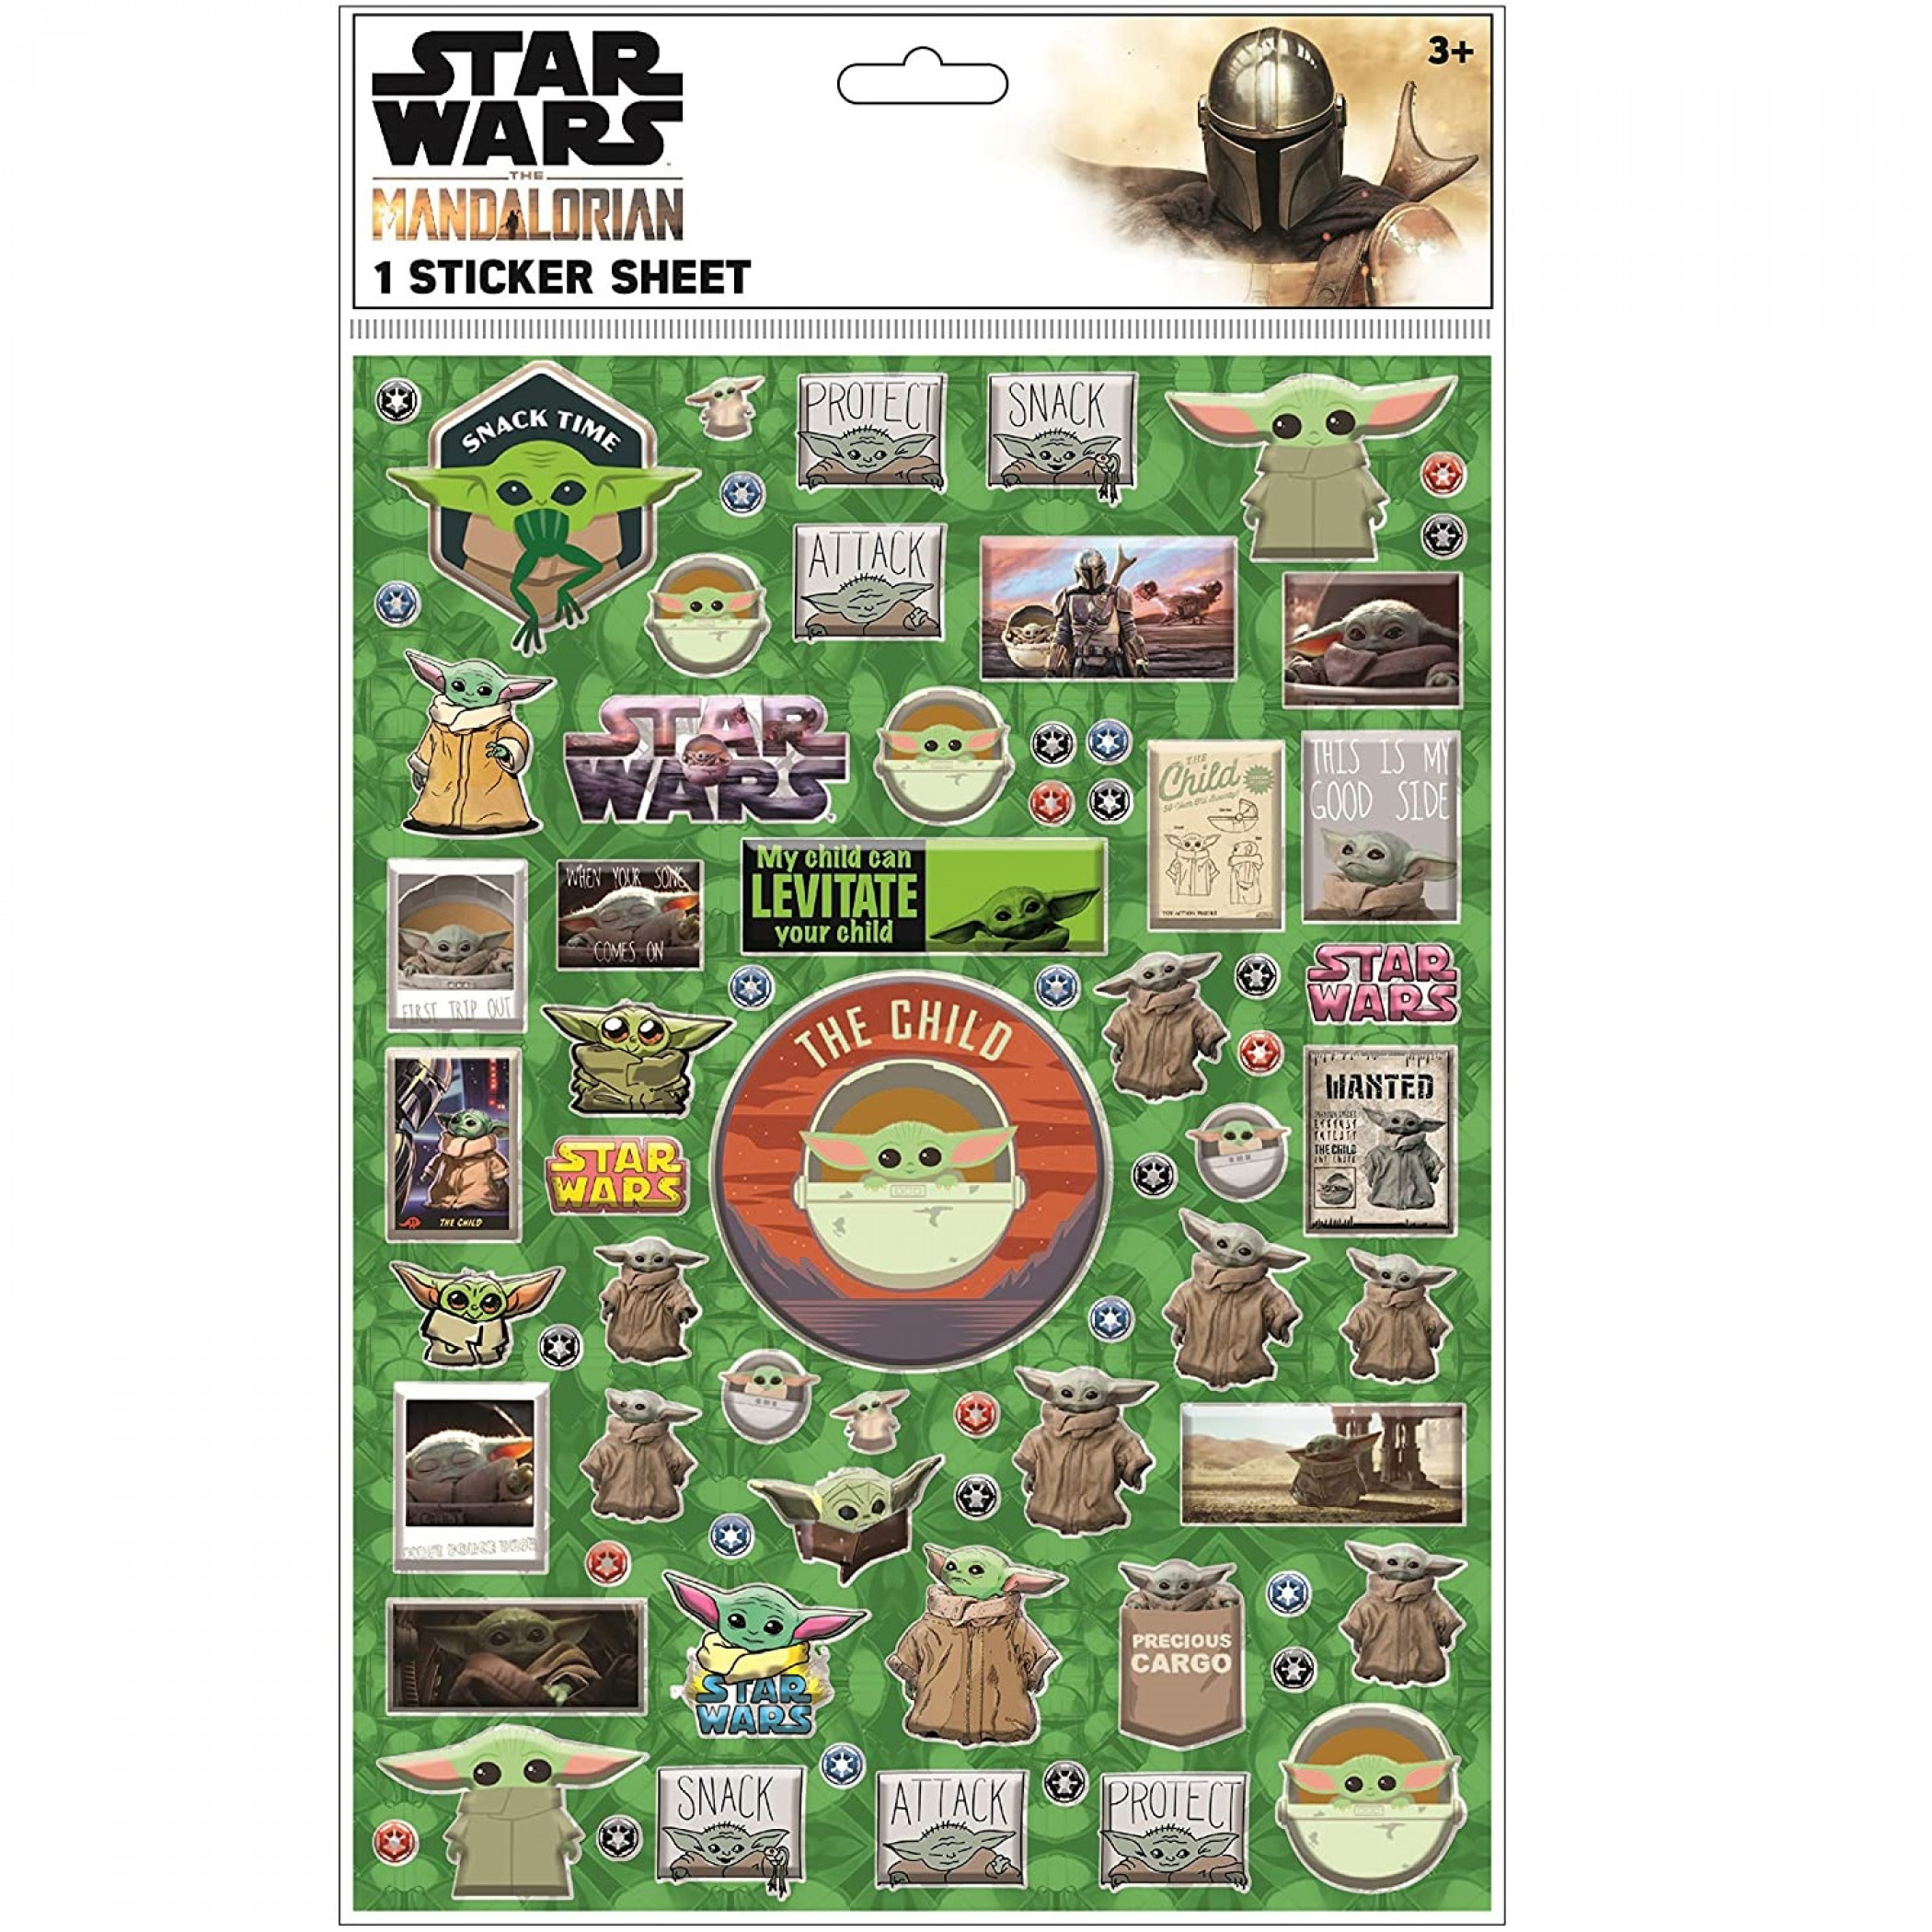 Star Wars The Child from The Mandalorian Raised Sticker Sheet